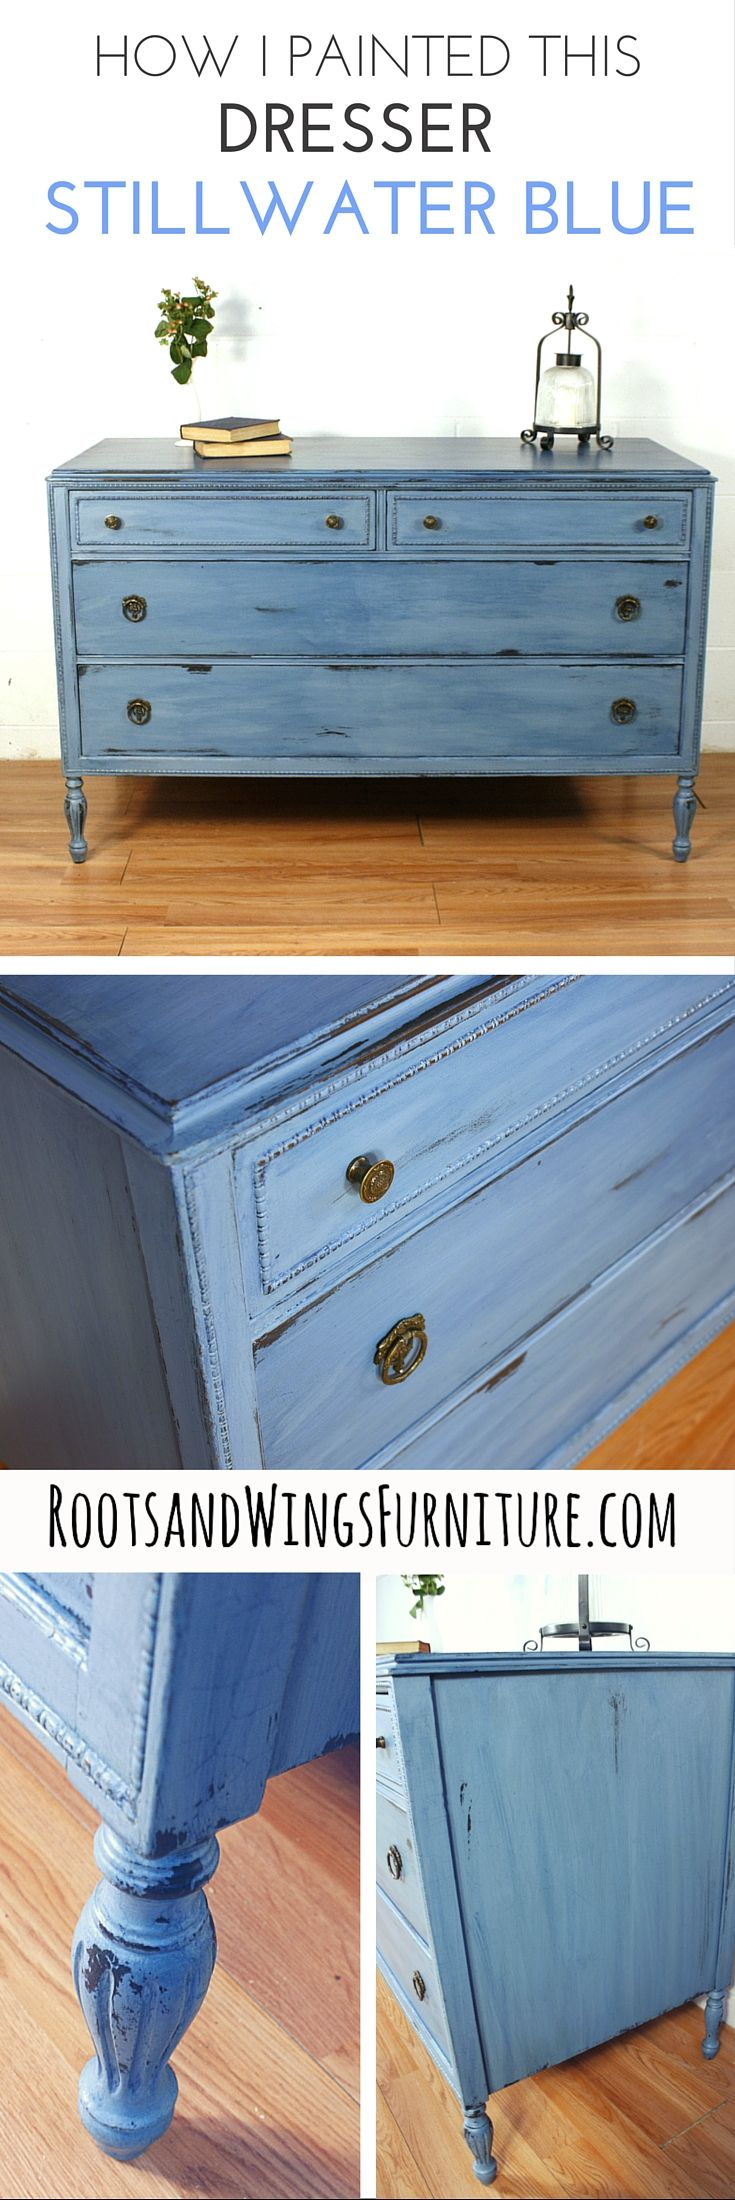 A dresser painted in General Finishes Stillwater Blue Chalk Paint, color washed with Coastal Blue Milk Paint.